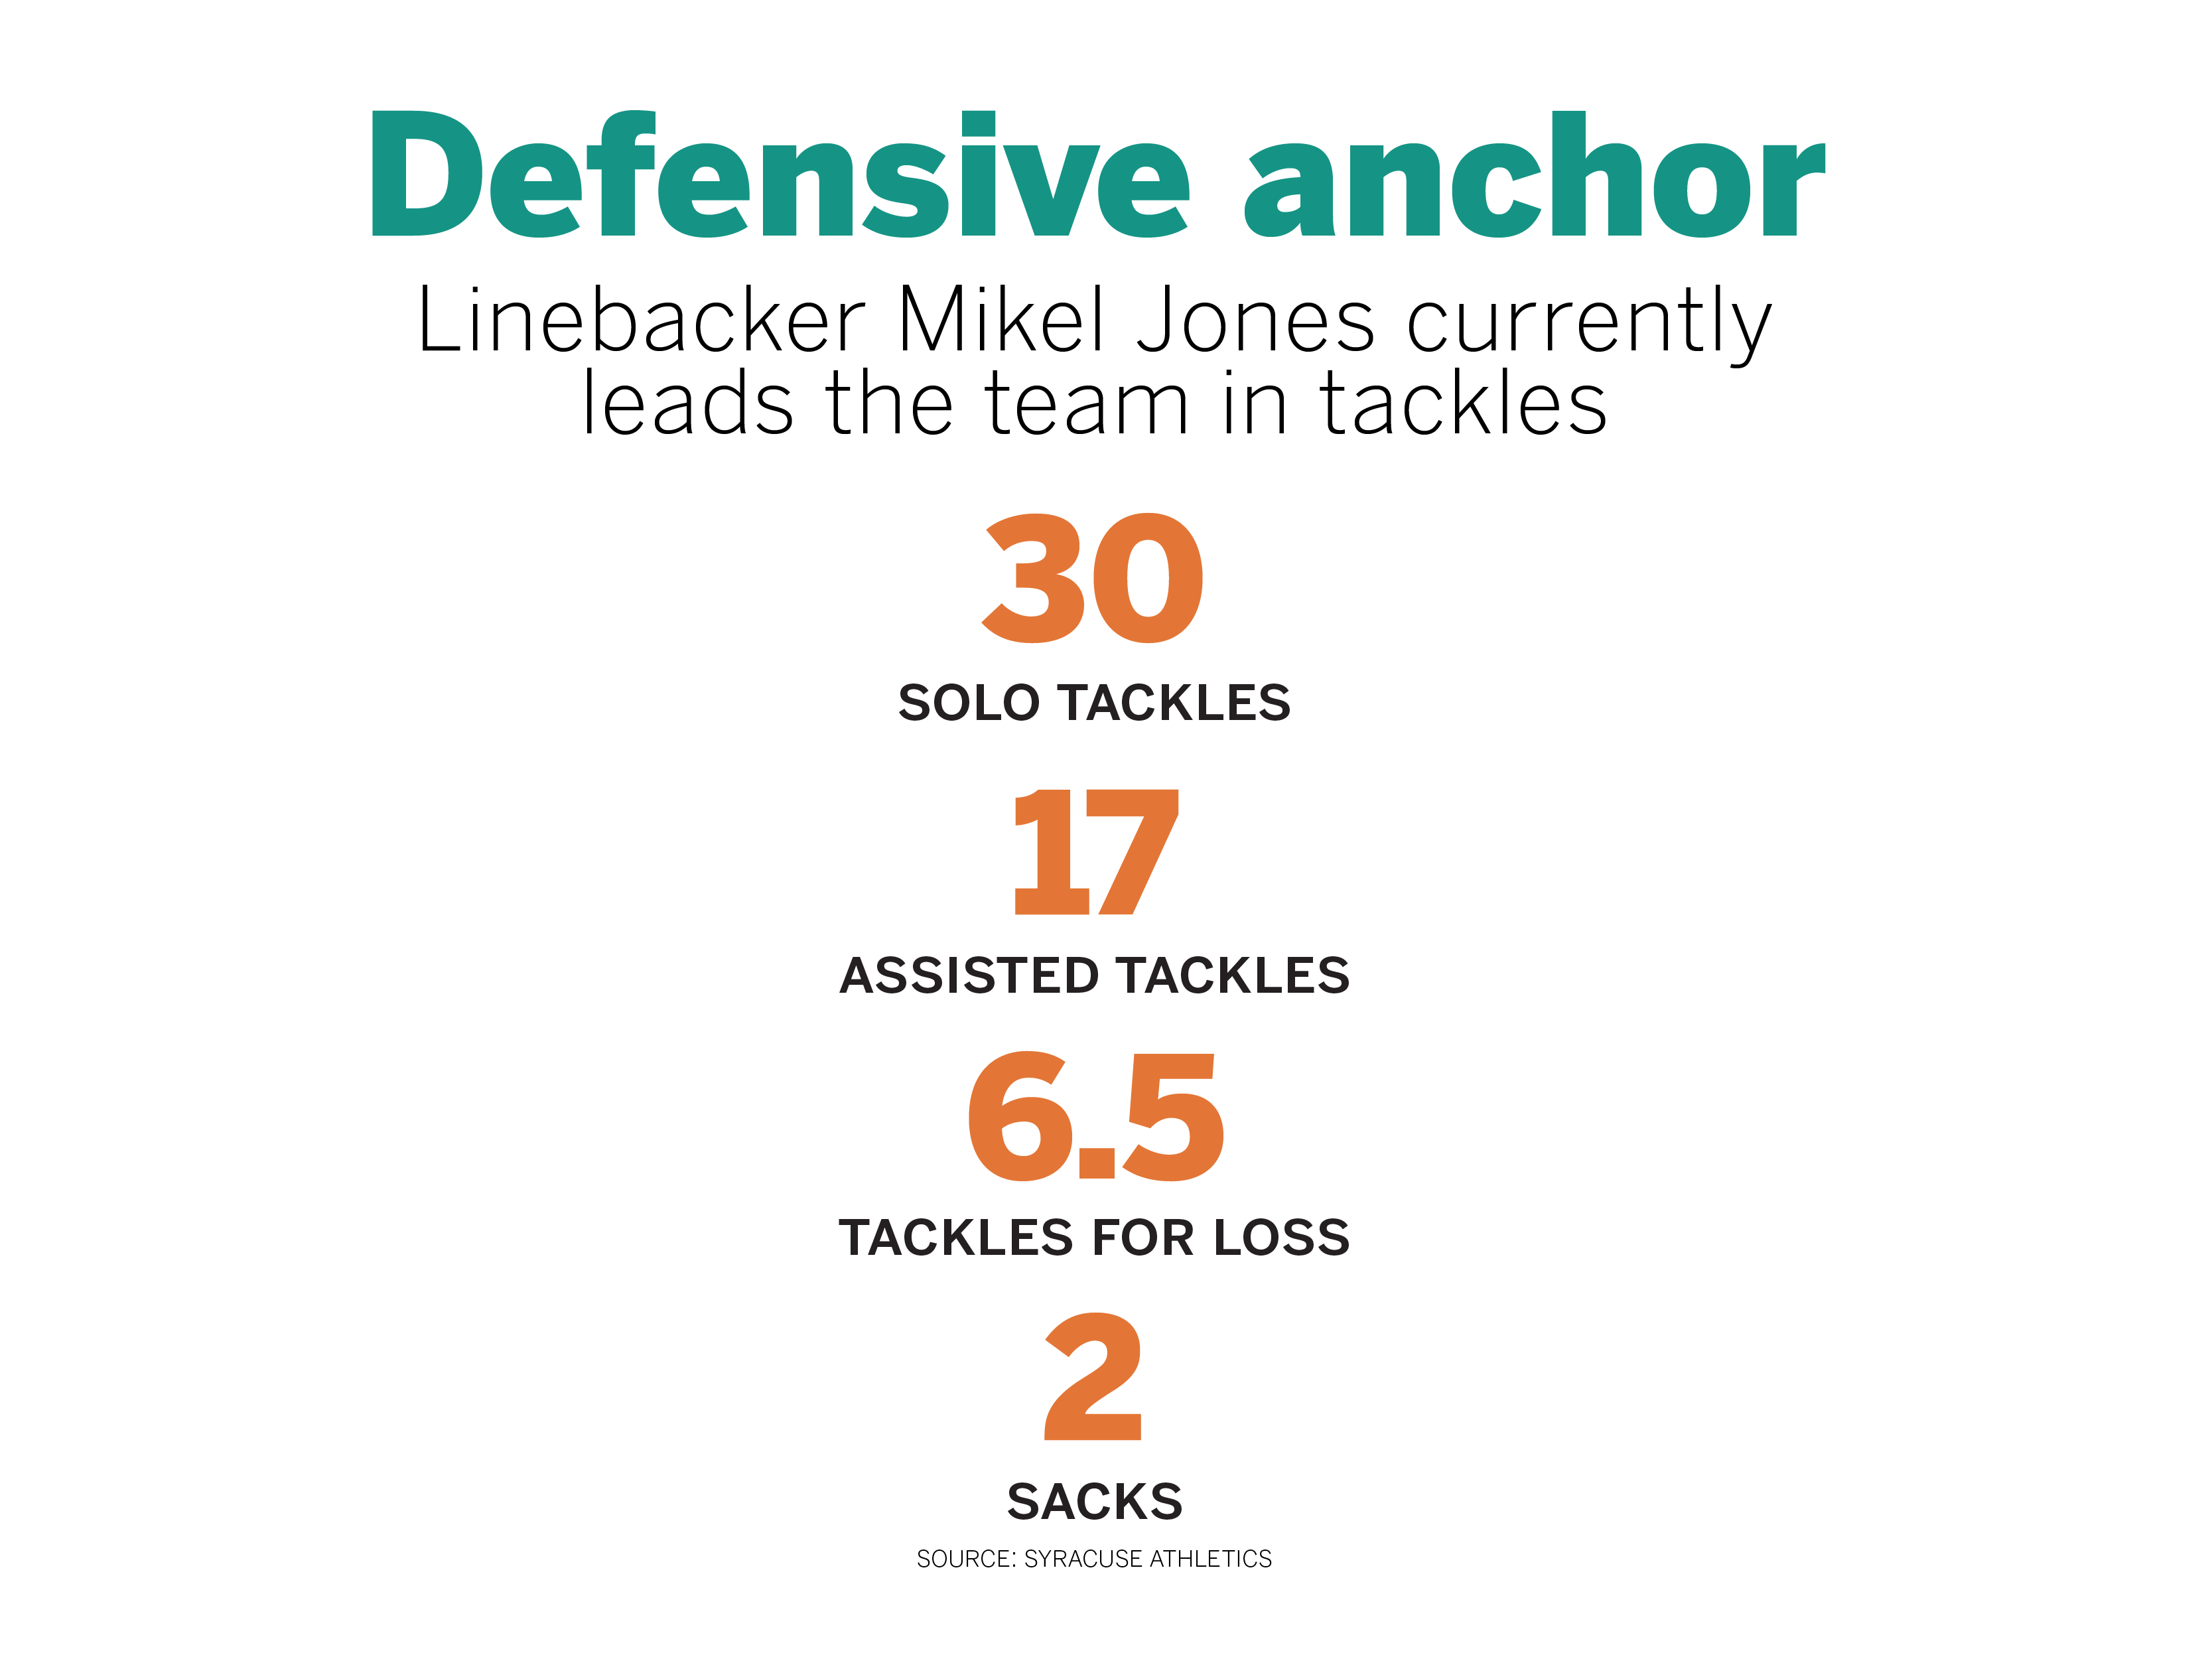 Mikel Jones has filled the stat sheet for the SU defense this year.